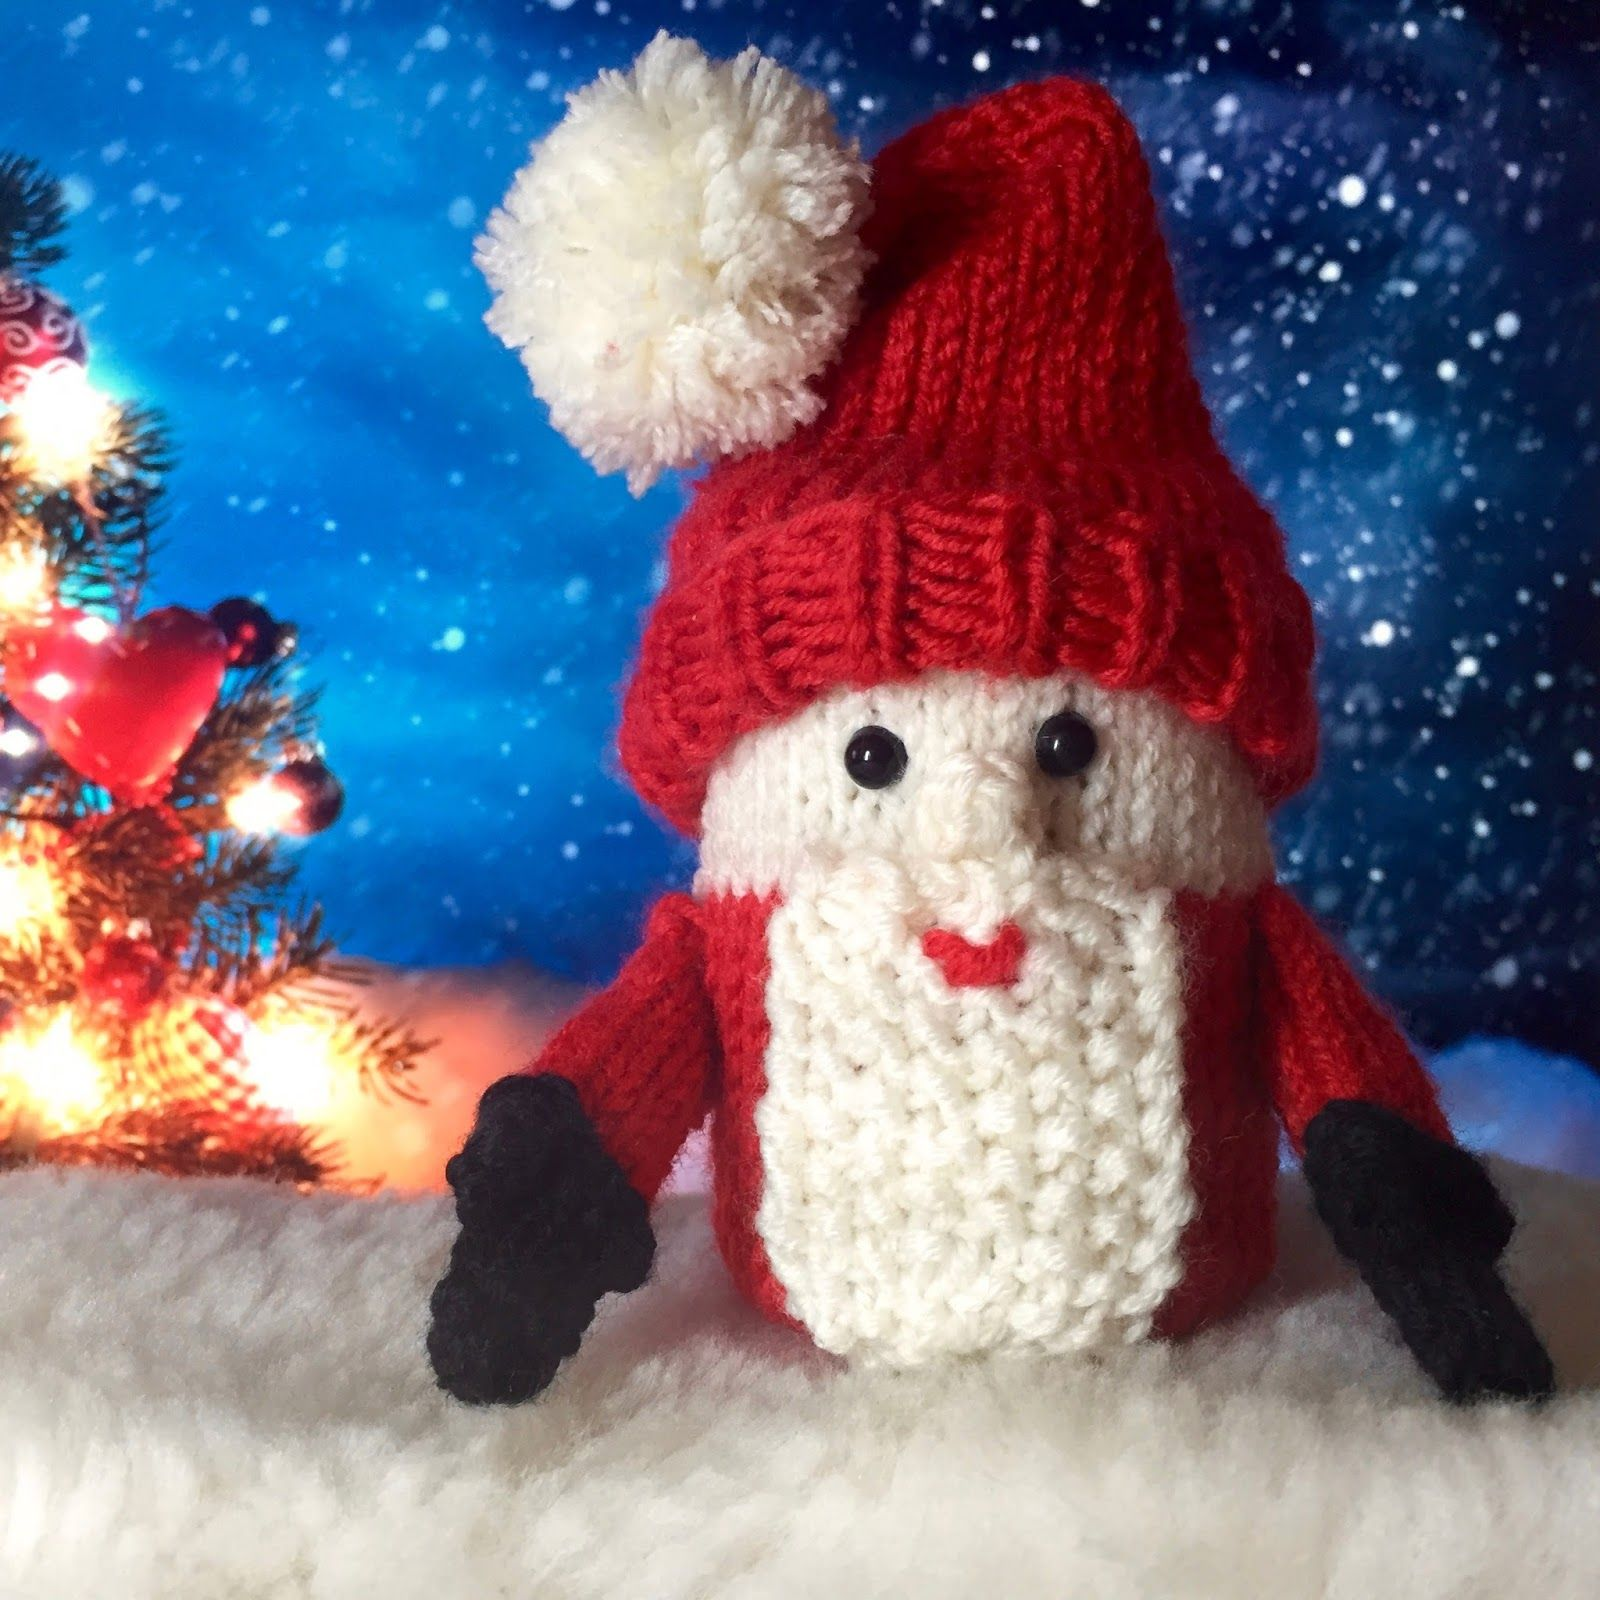 Secret Surprise Santa Knitting Pattern On Crafts From The Cwtch